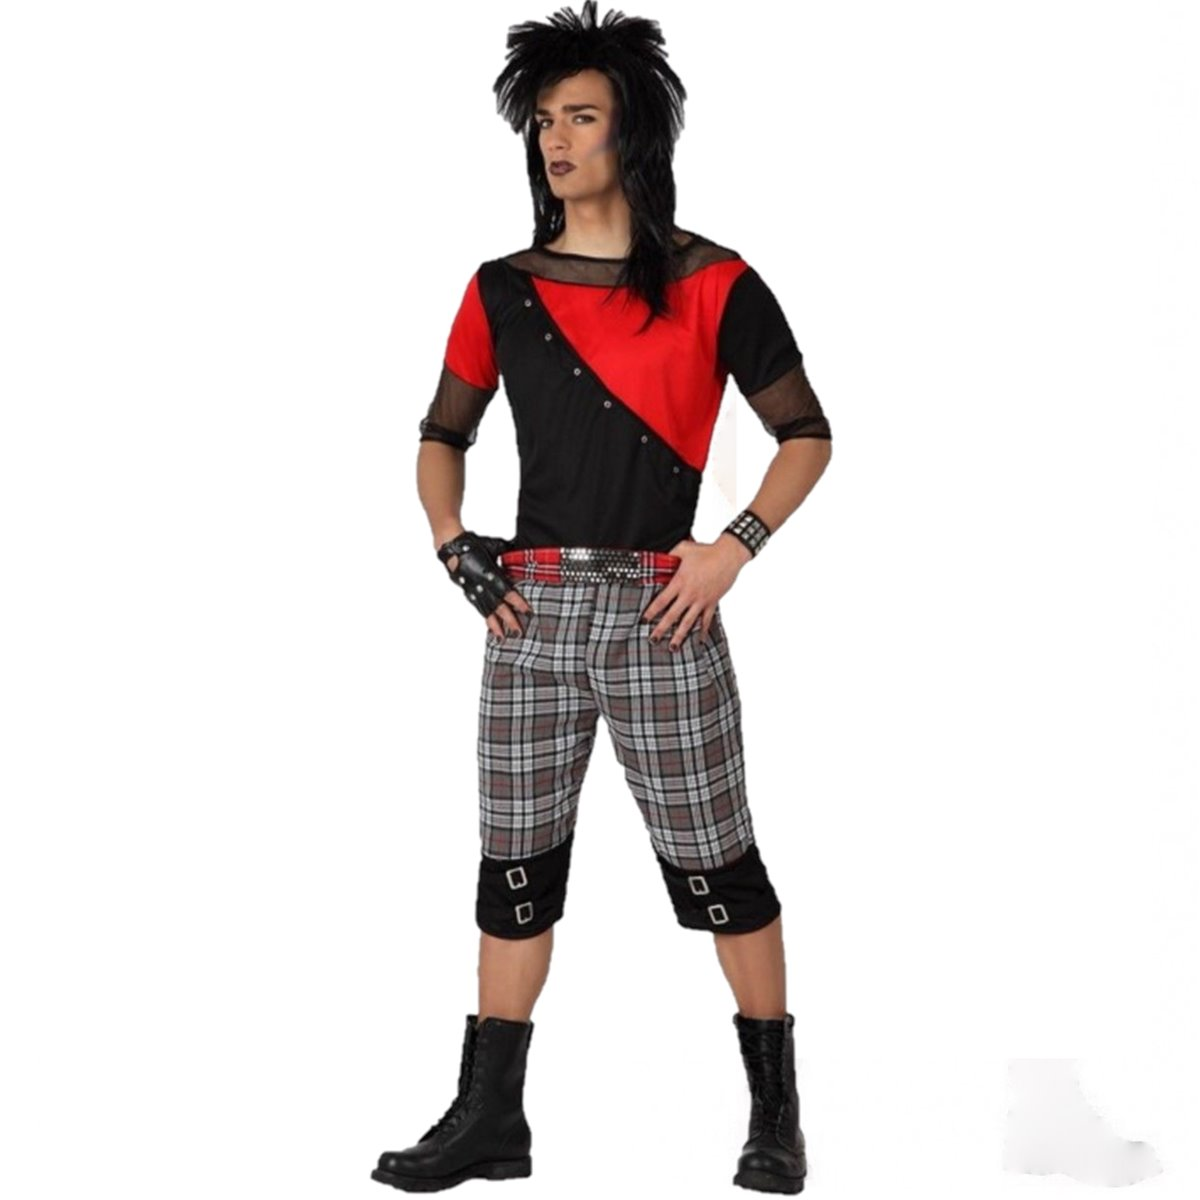 Details About Carnival Costumes Punk Emo Man Gothic Cosplay Halloween  Jersey + KIT MAKEUP